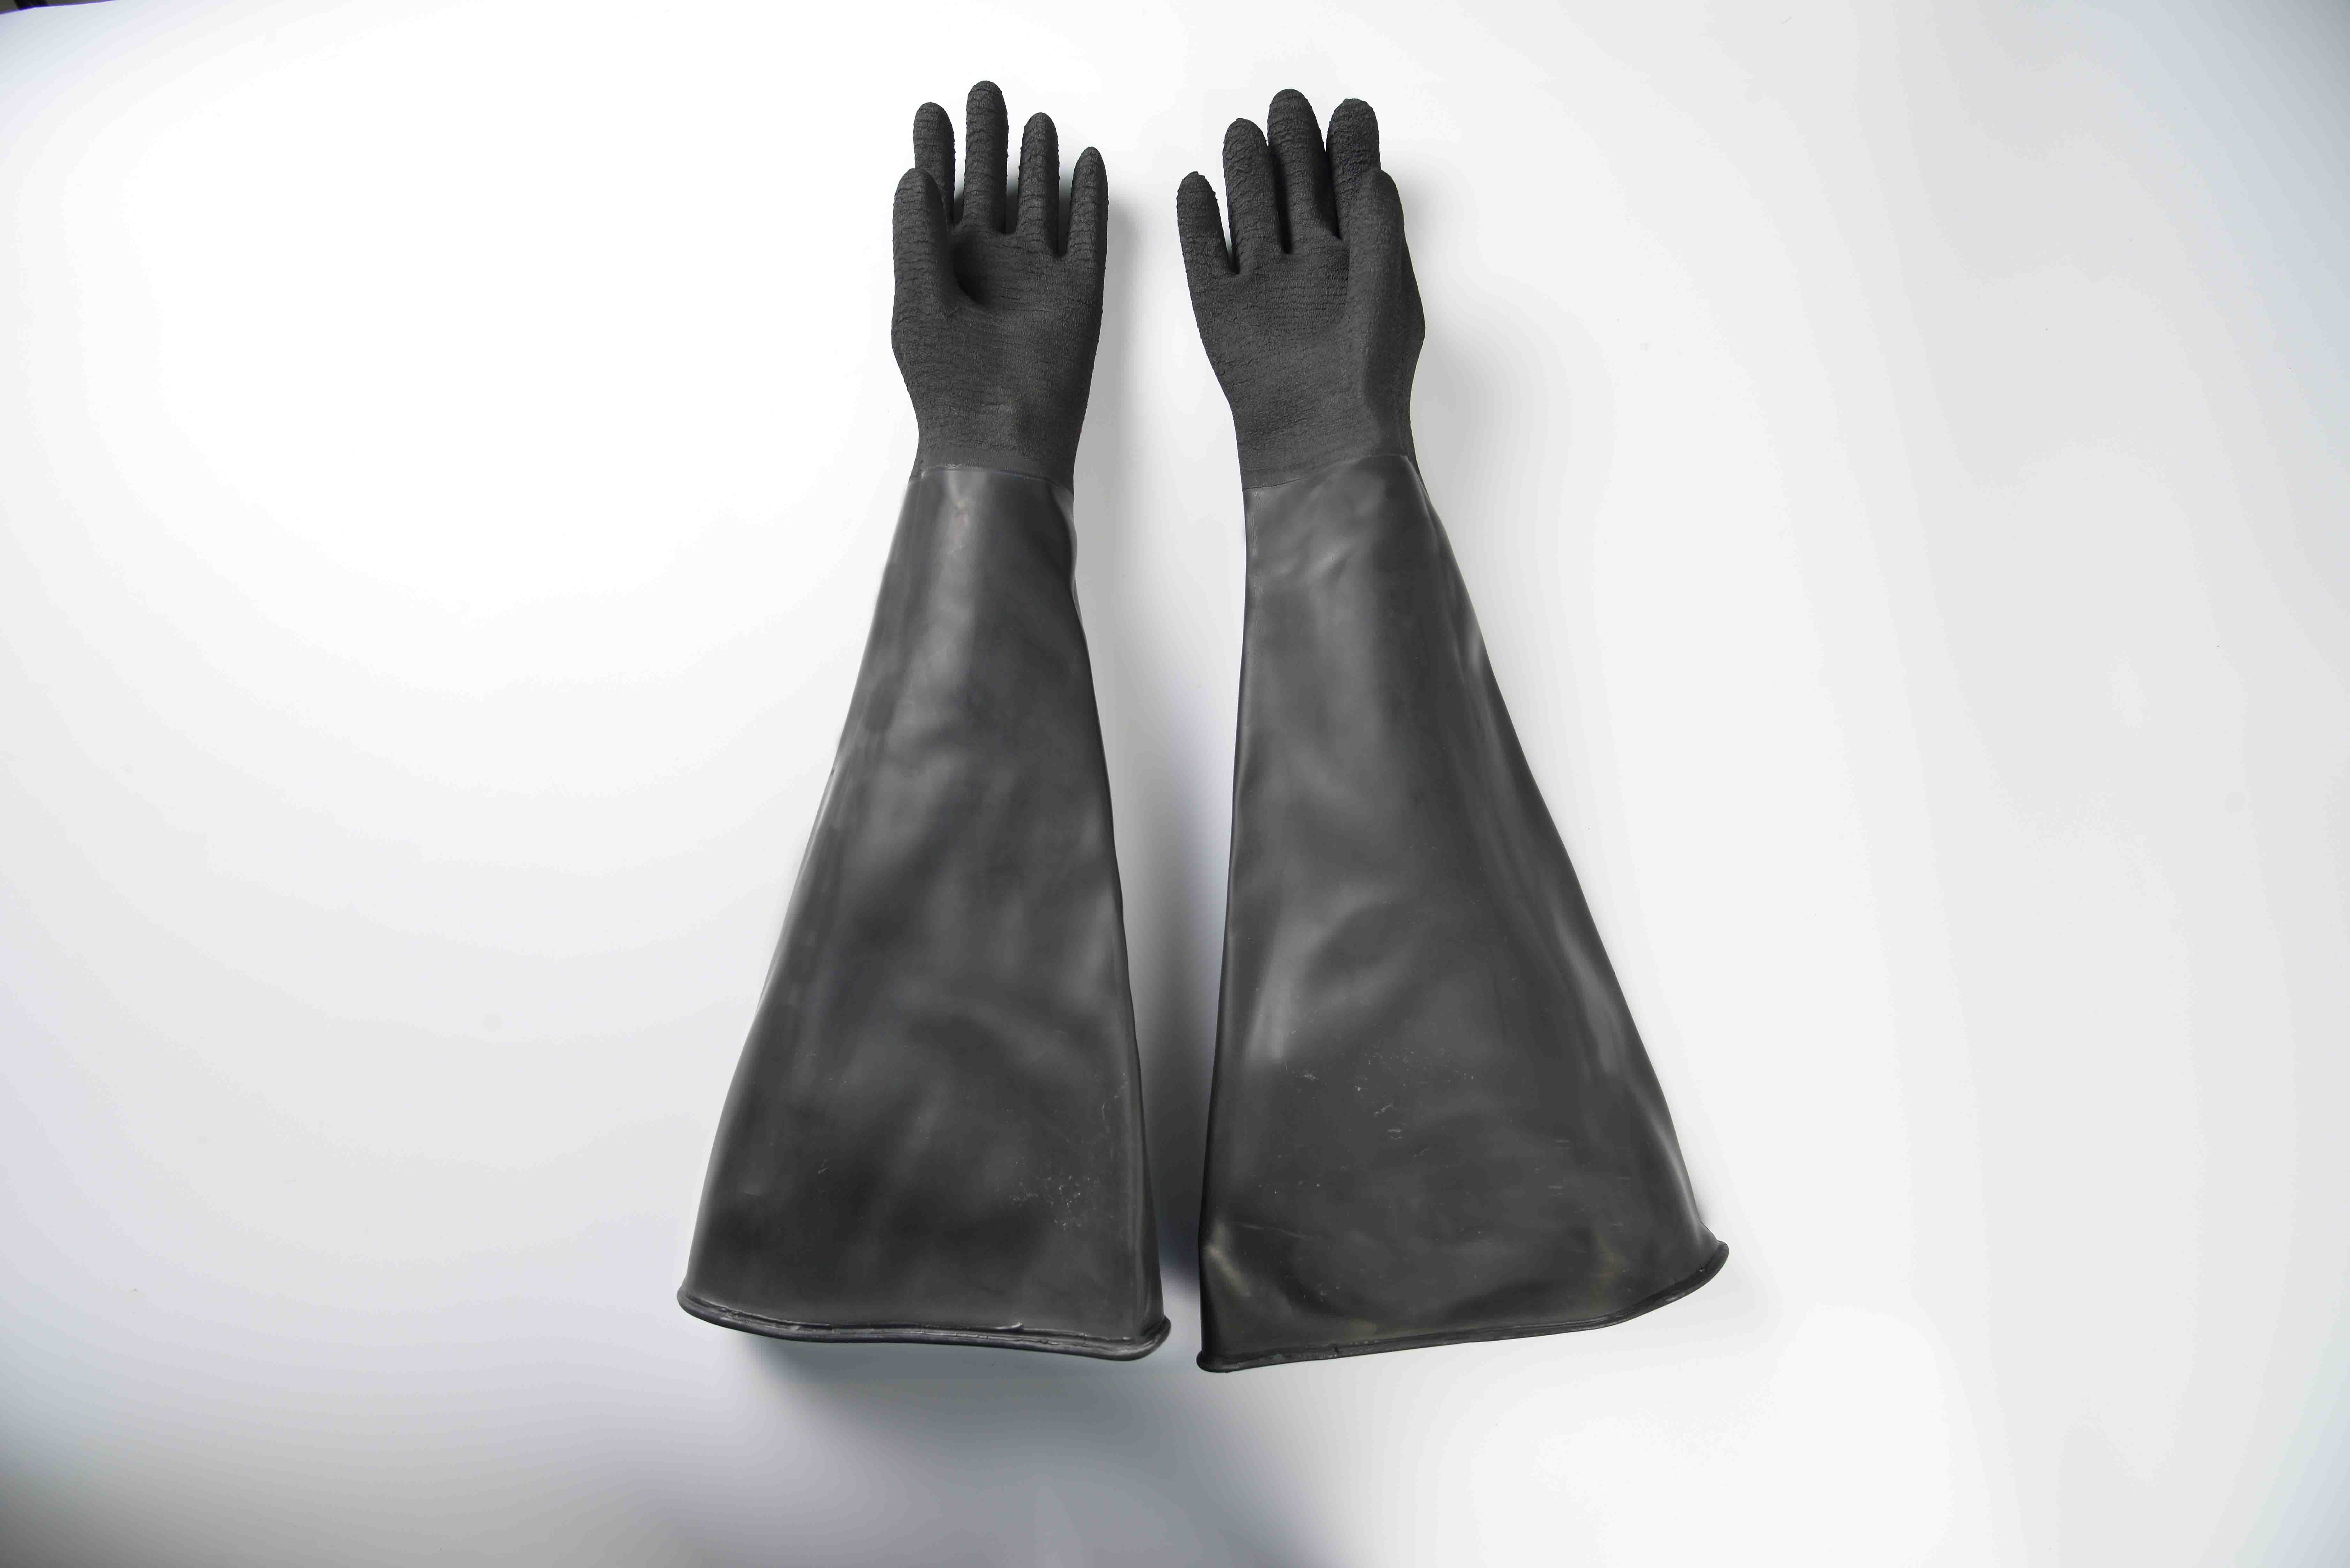 High Quality for 26″ Industrial rubber glove-rough finish for Florence